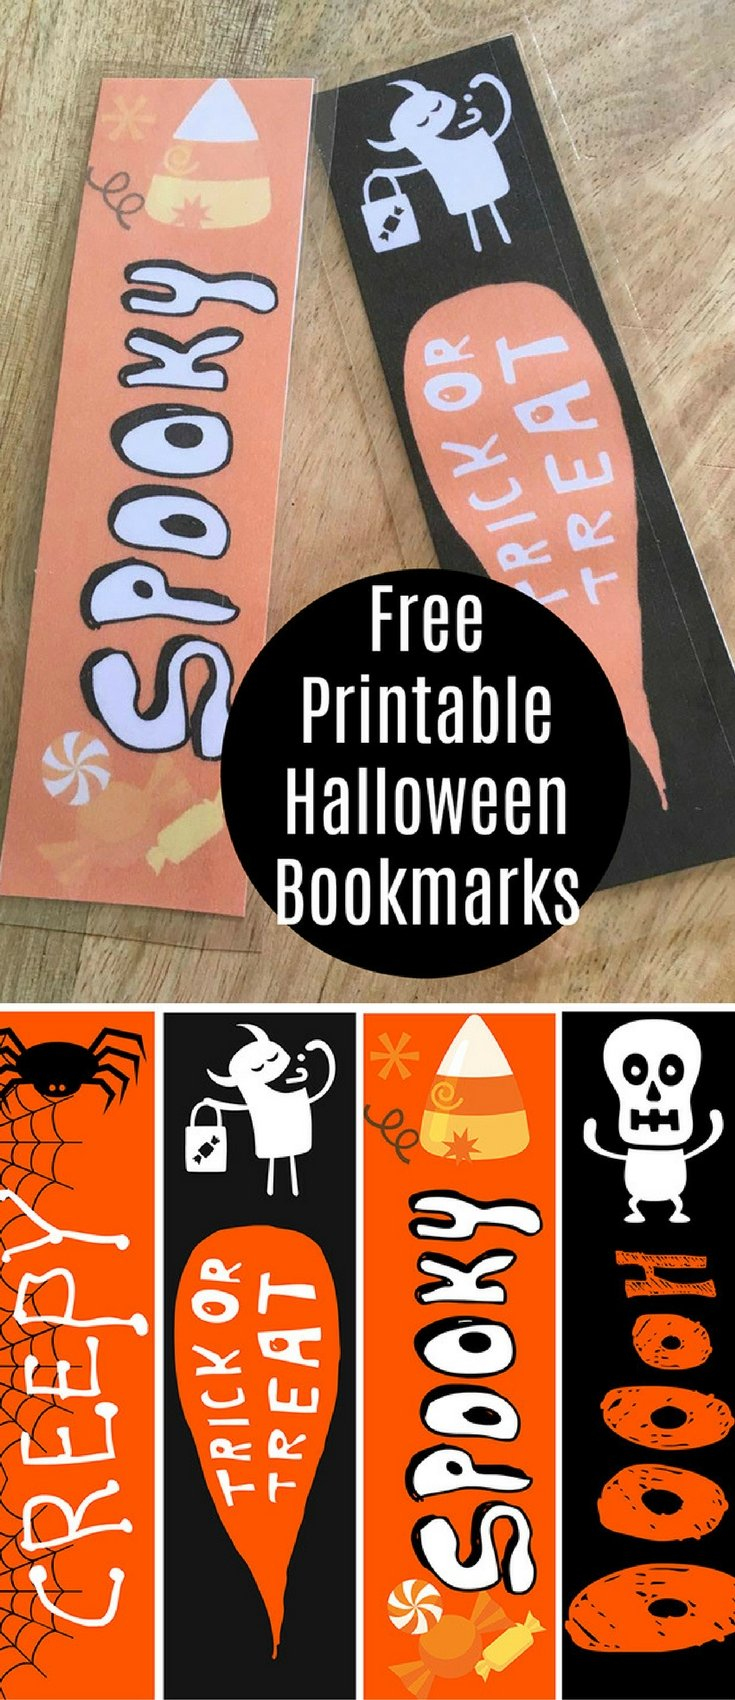 FREE Printable Halloween Bookmarks are the perfect party favors! Print, laminate, and give them out to trick or treaters. They're super cute and make reading fun!